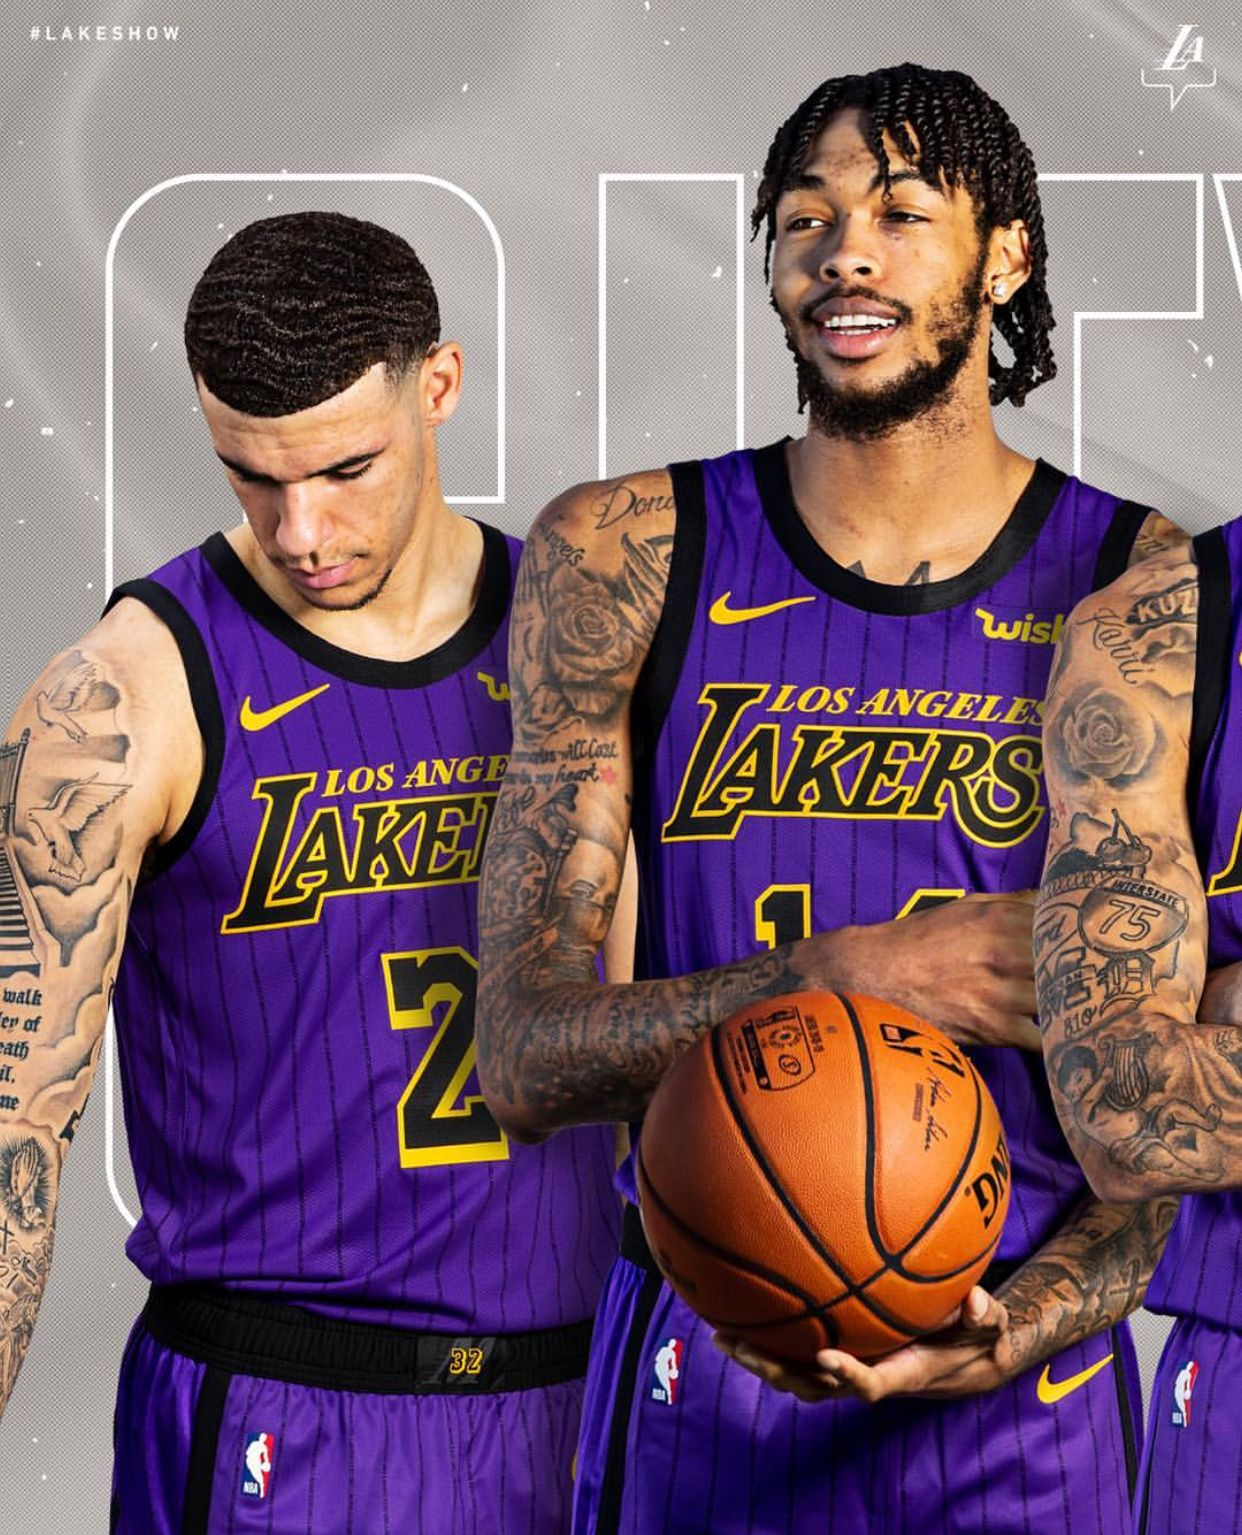 Pin by Mason Johnson on Tattoos Kelly oubre, Kelly oubre